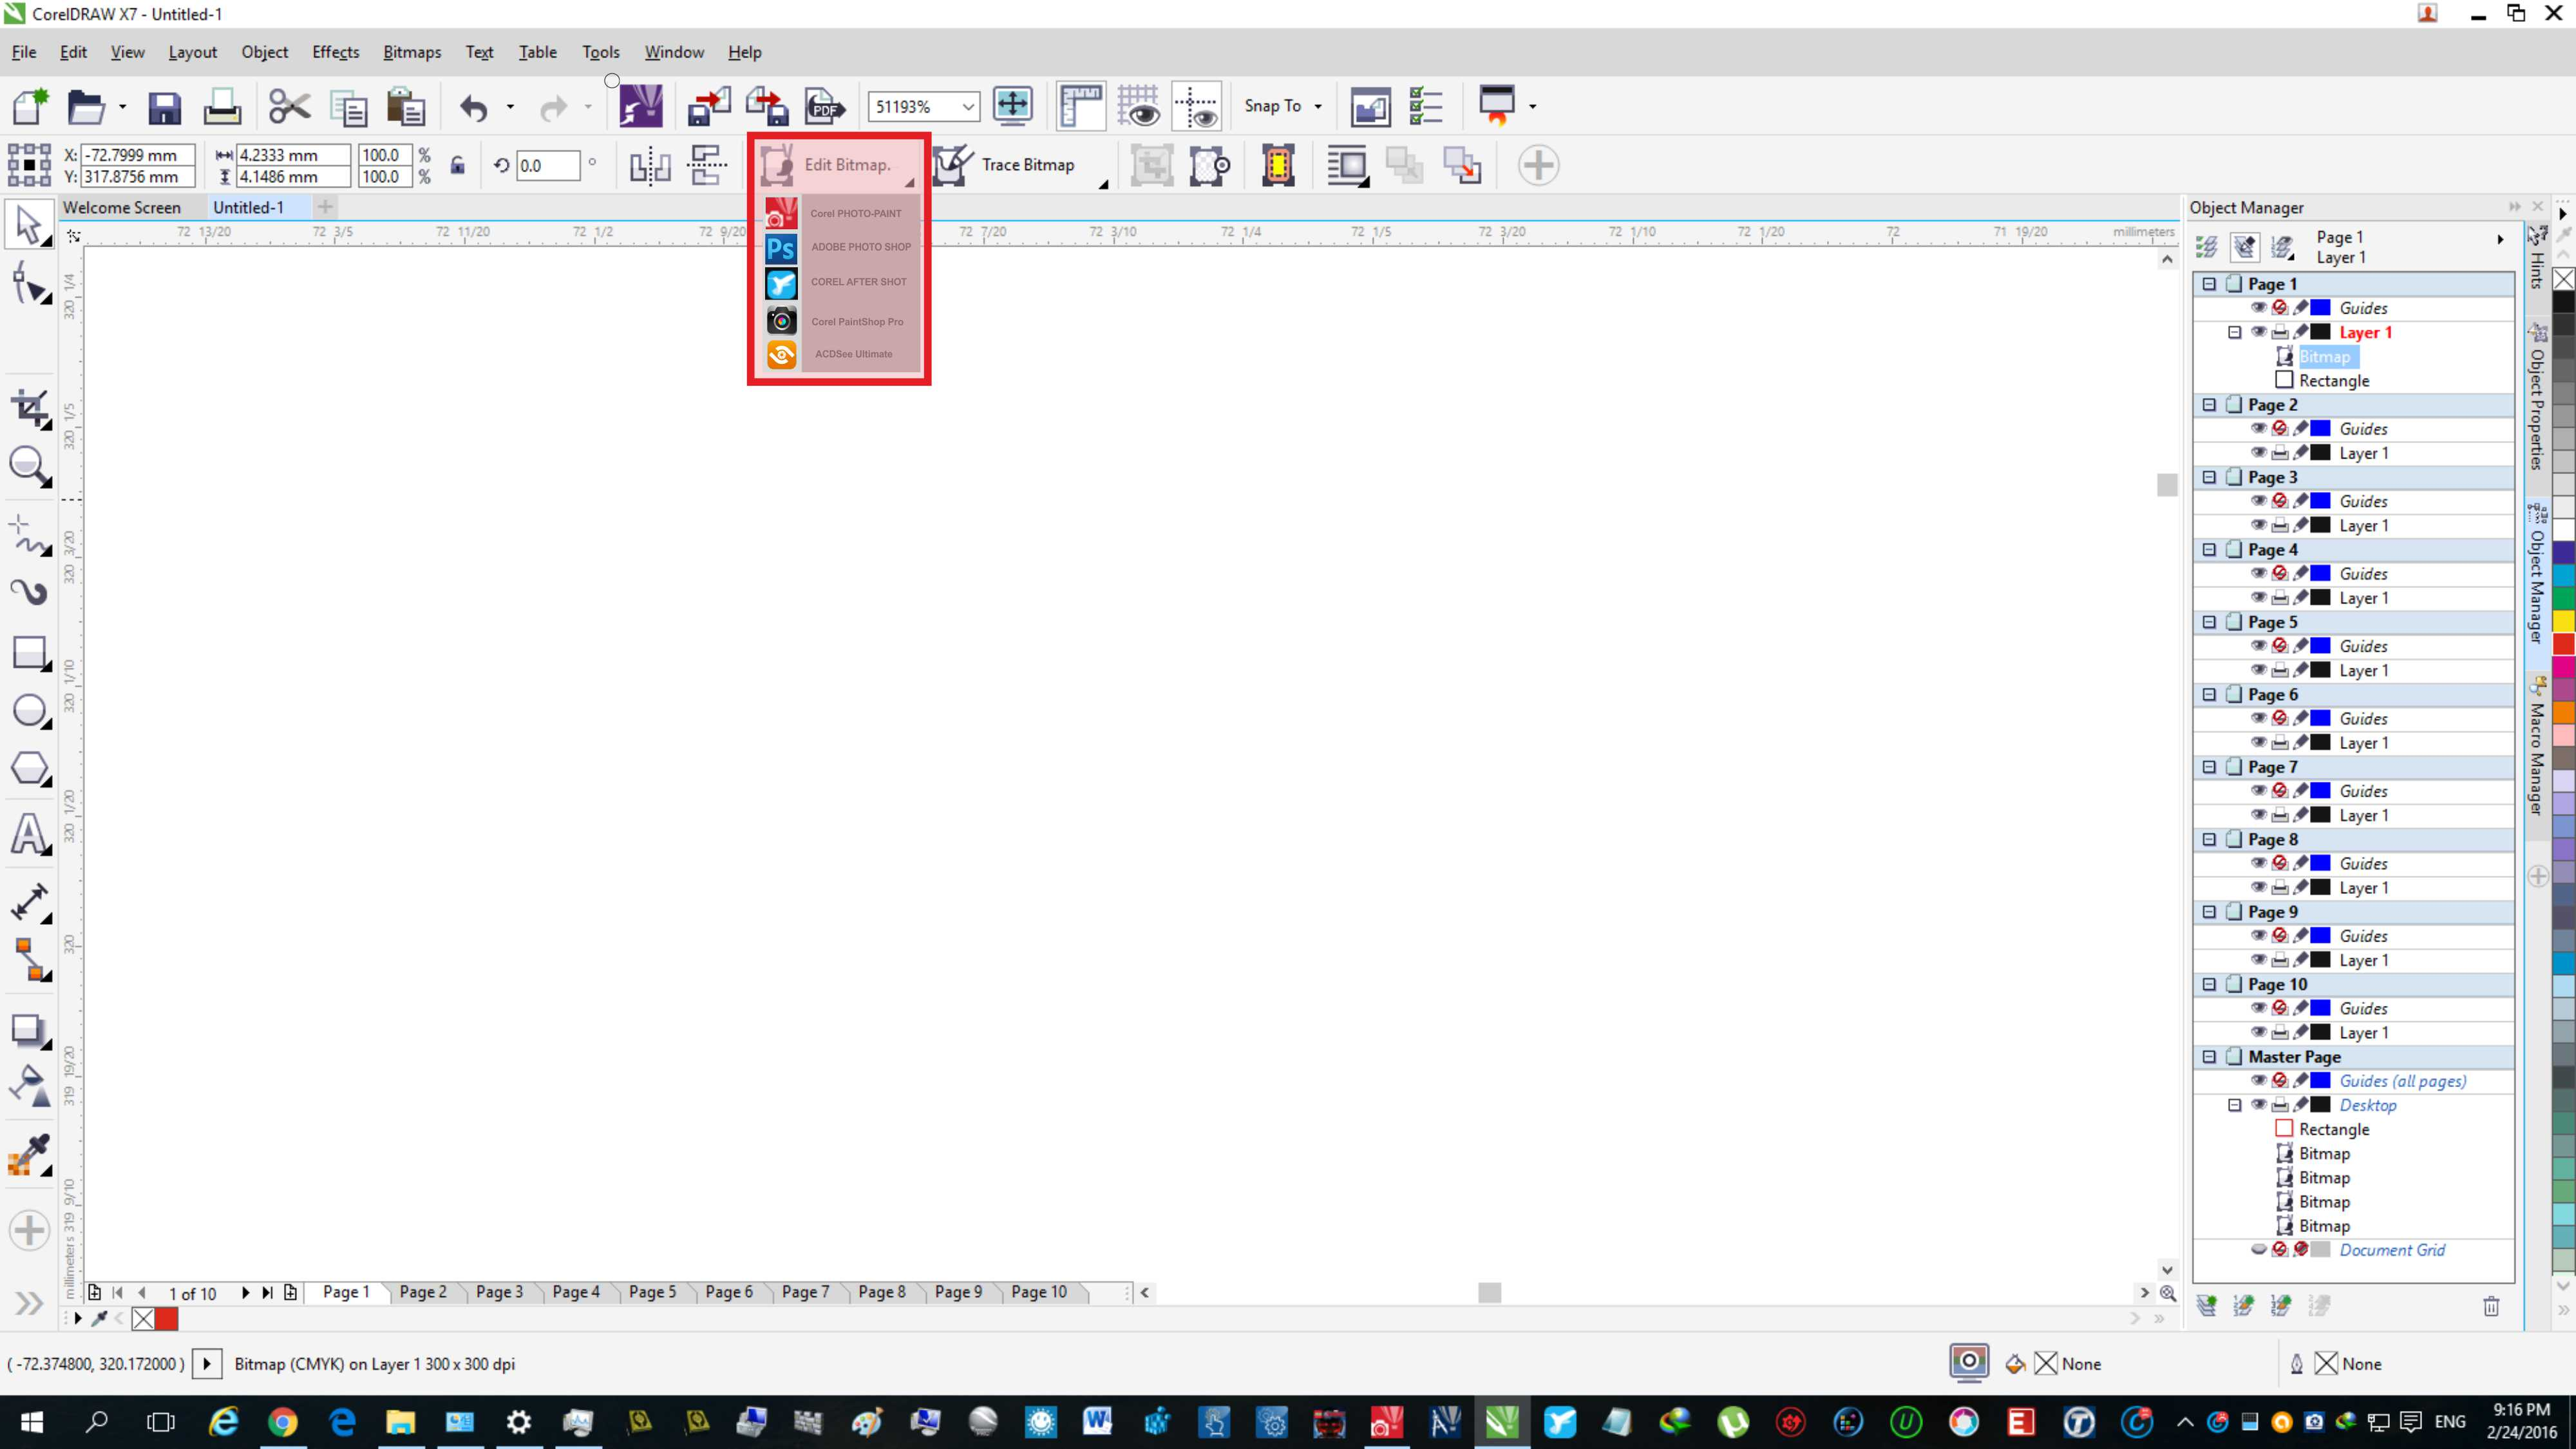 Corel draw viewer online - Request A New Feature Vision For The Future